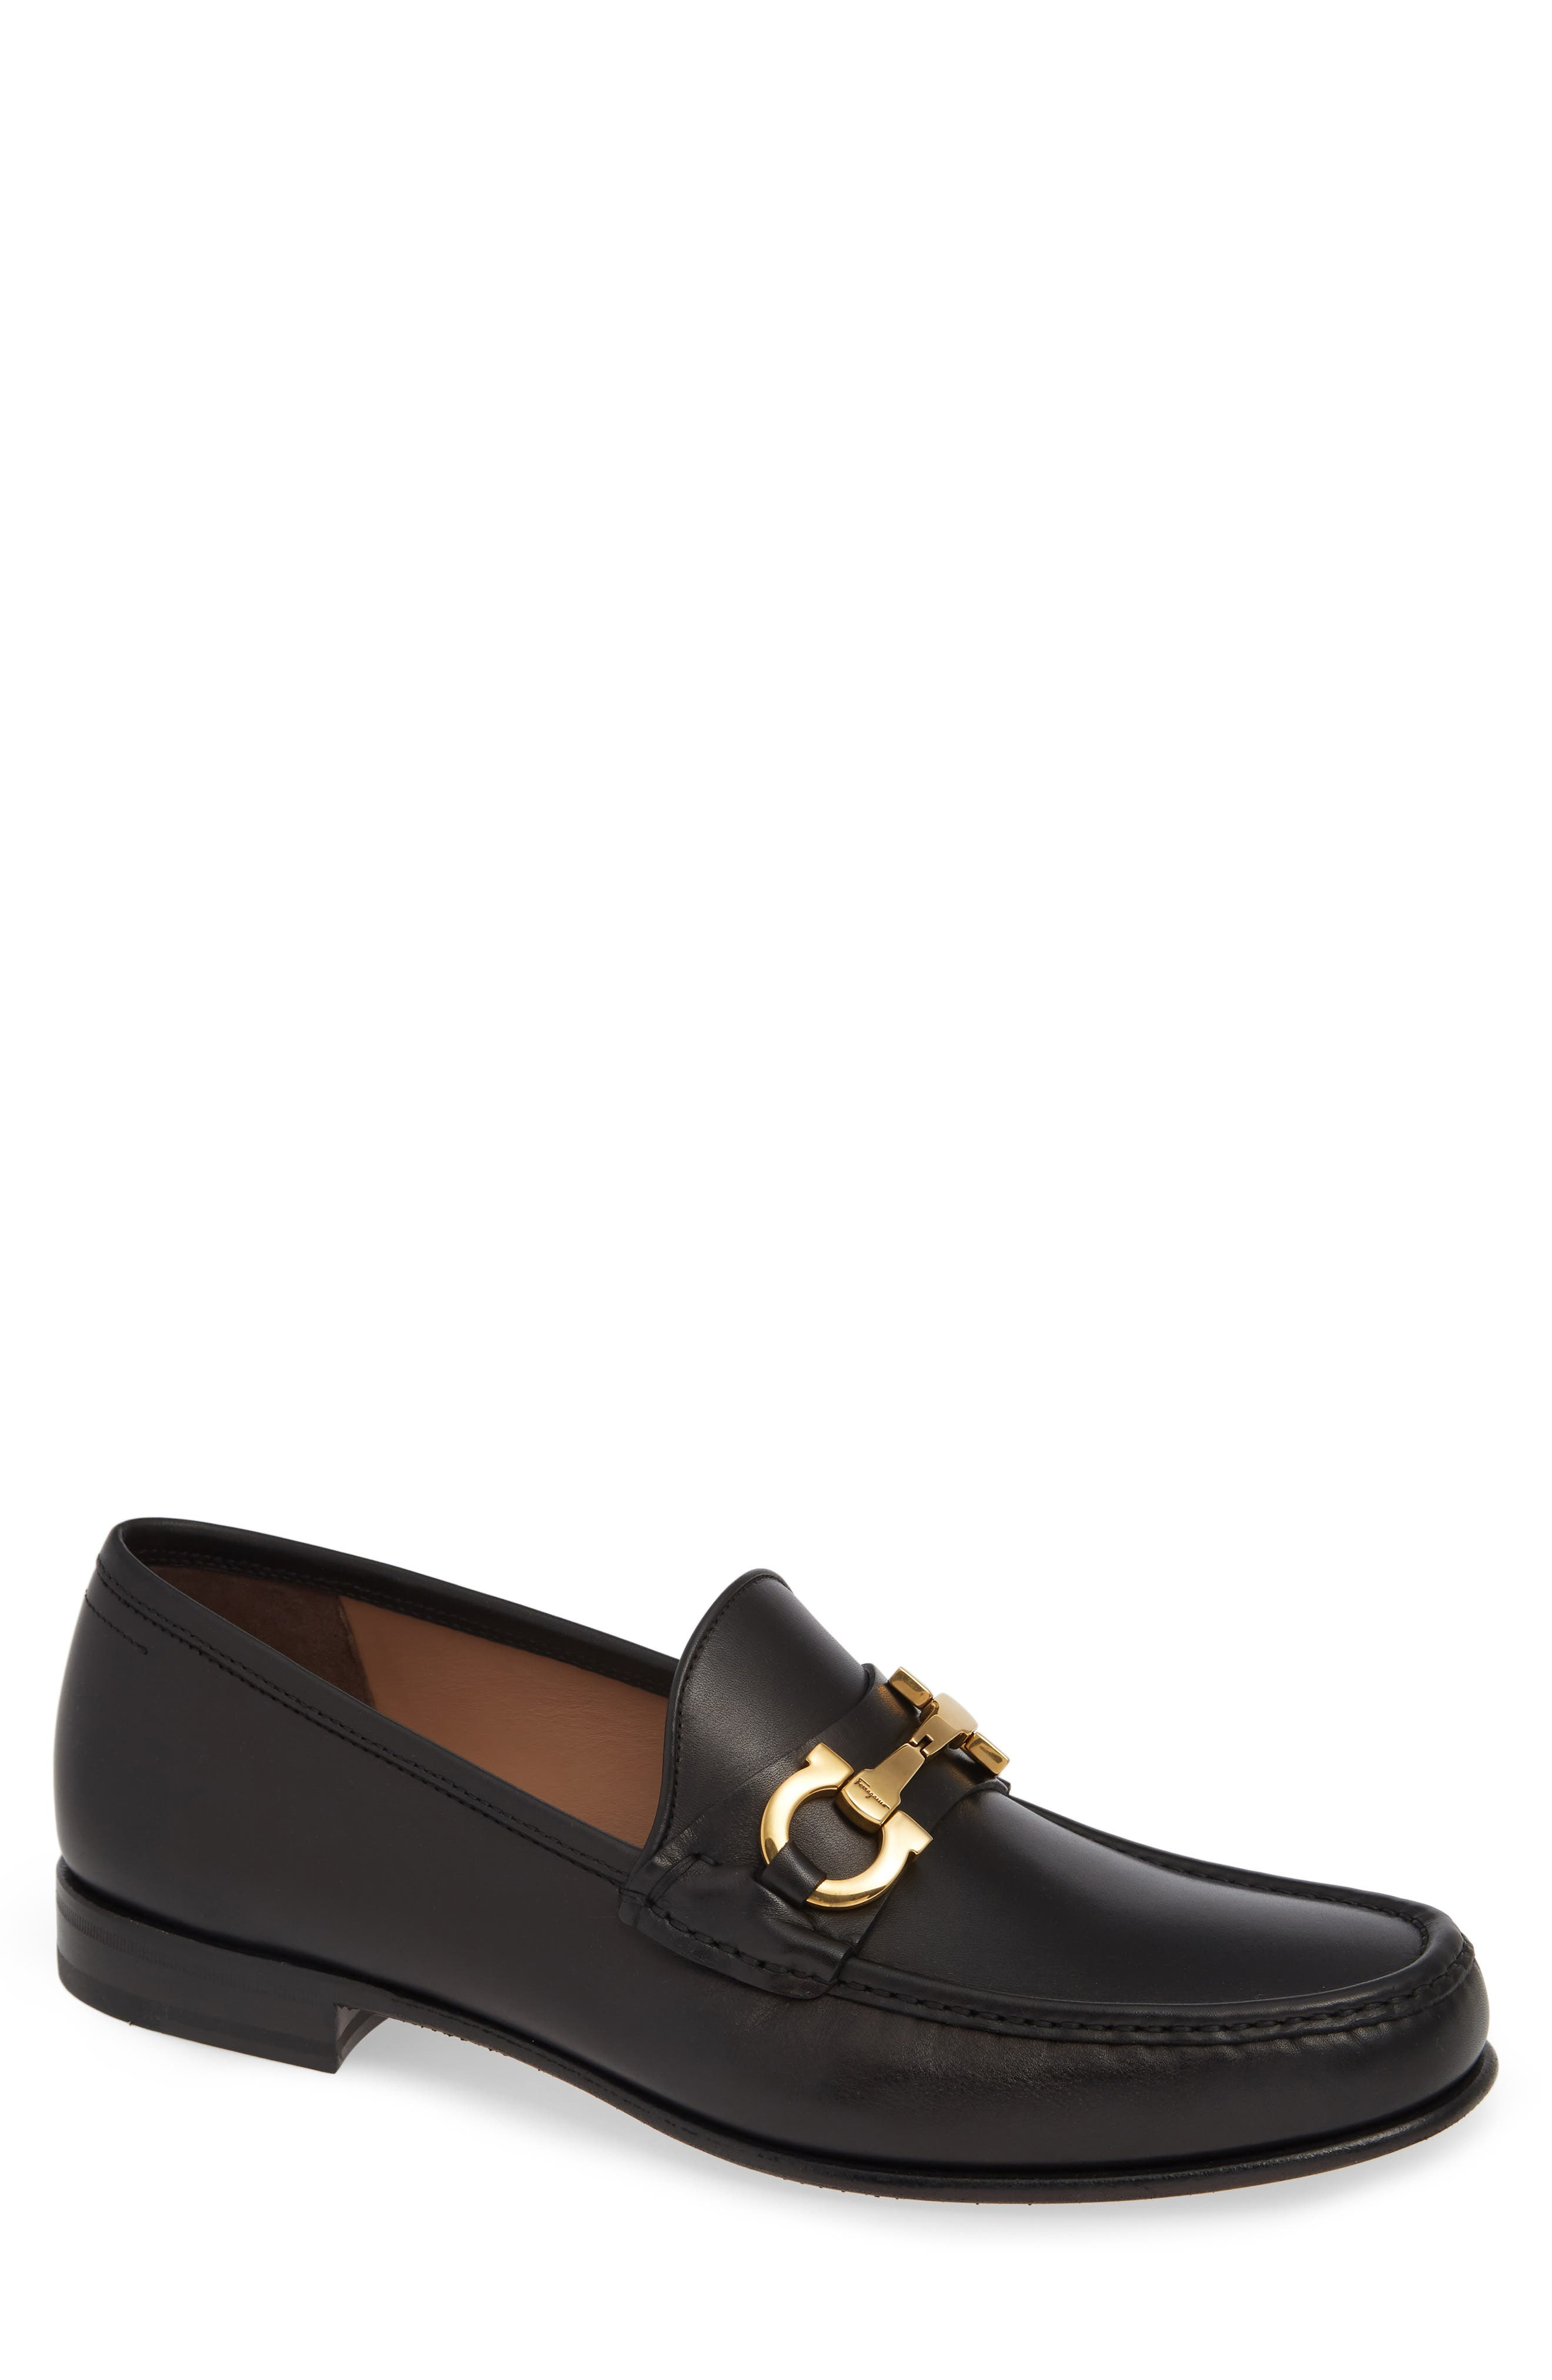 Bond Bitted Moc Loafer,                             Main thumbnail 1, color,                             NERO LEATHER